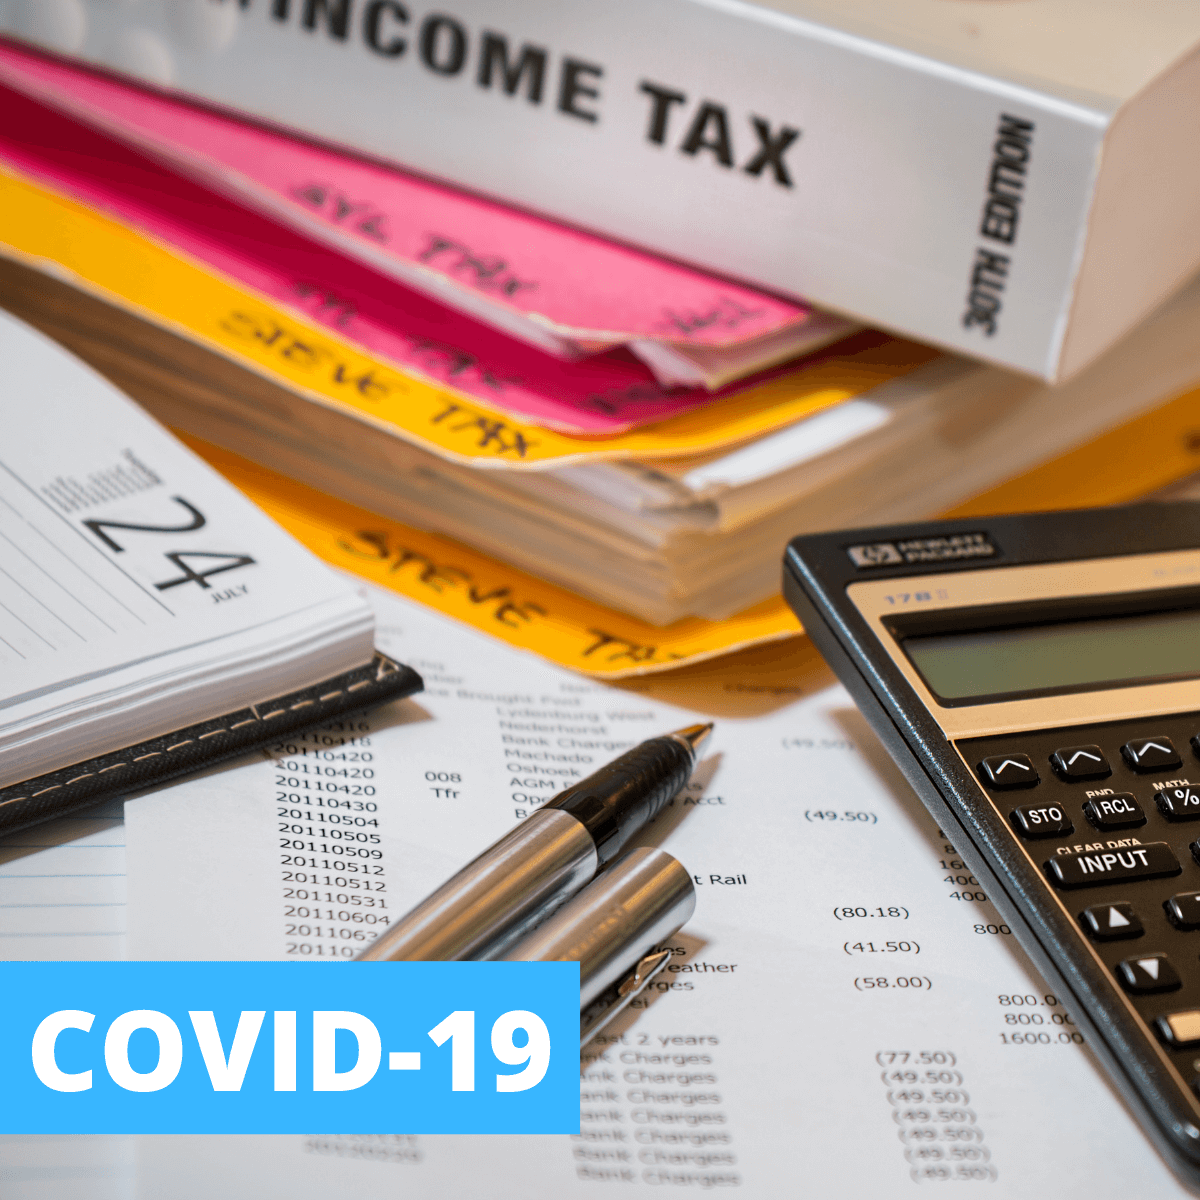 Are Your COVID-19 Benefits Taxable?